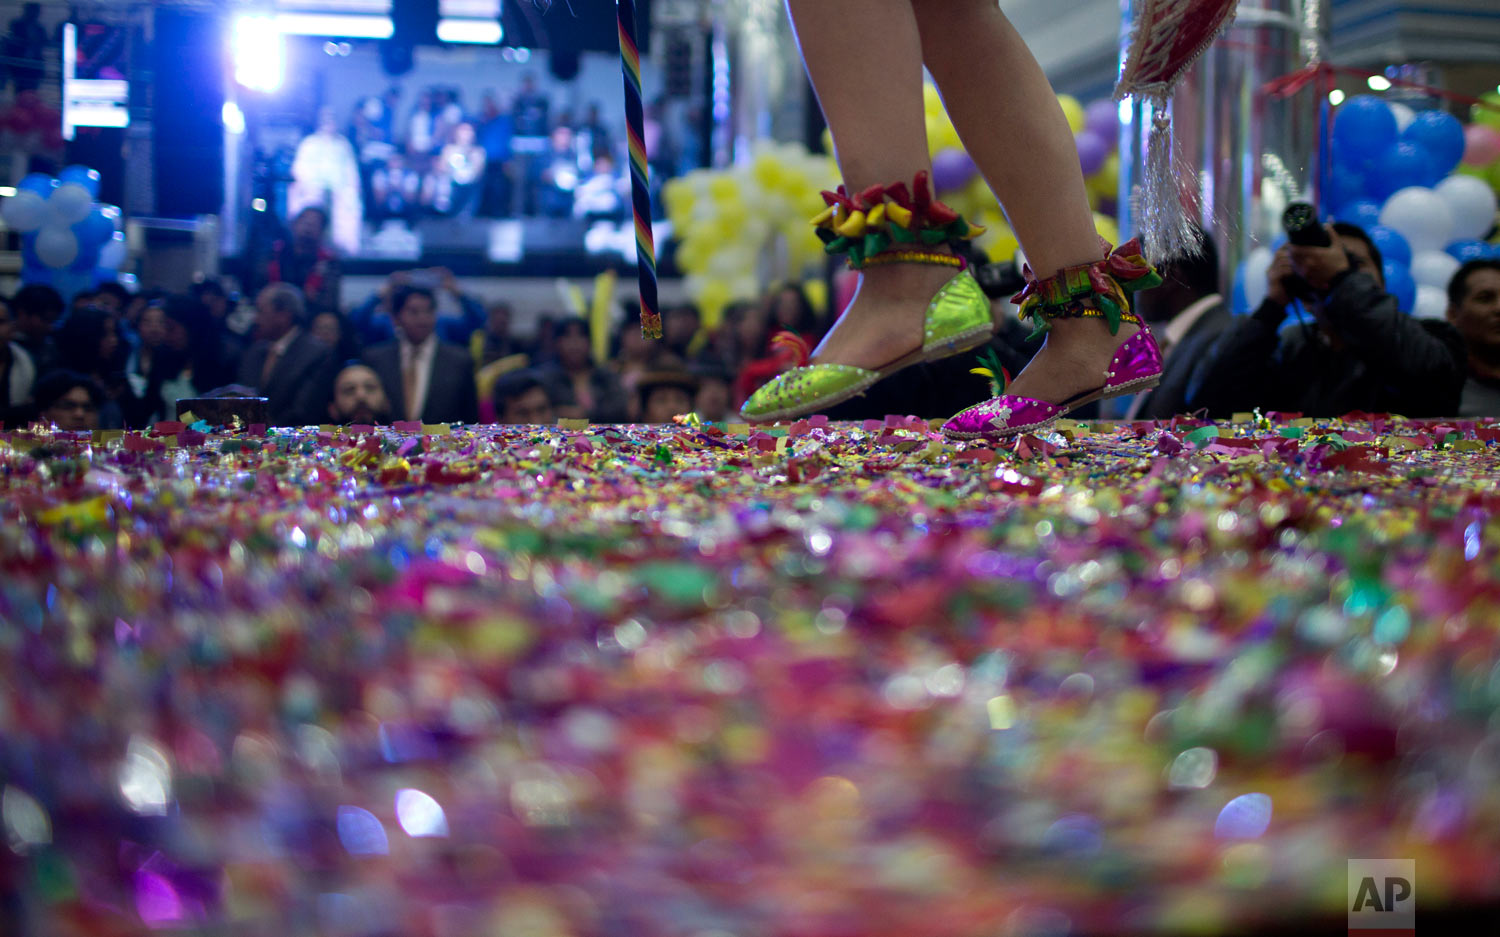 A contestant competes on stage blanketed in confetti in the Queen of Great Power contest in La Paz, Bolivia, Friday, May 24, 2019. The largest religious festival in the Andes choses its queen in a tight contest to head the Festival of the Lord Jesus of the Great Power, mobilizing dancers and musicians. (AP Photo/Juan Karita)